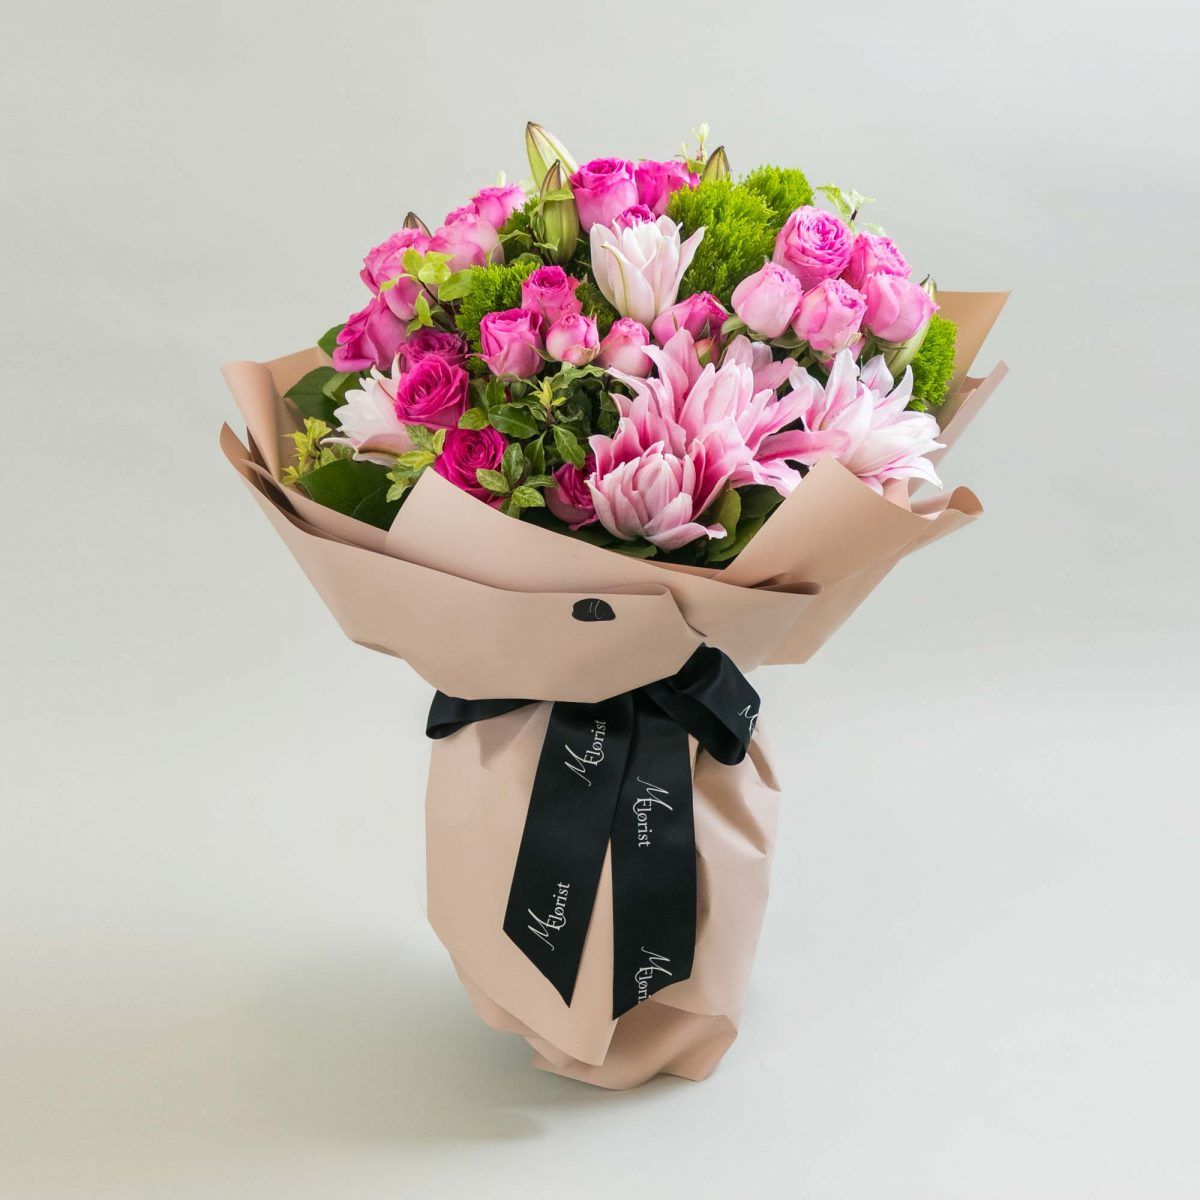 5 beautiful mothers day bouquets to spoil your mum hong kong tatler between dreams with double lily spray roses and seasonal foliage available at m florist izmirmasajfo